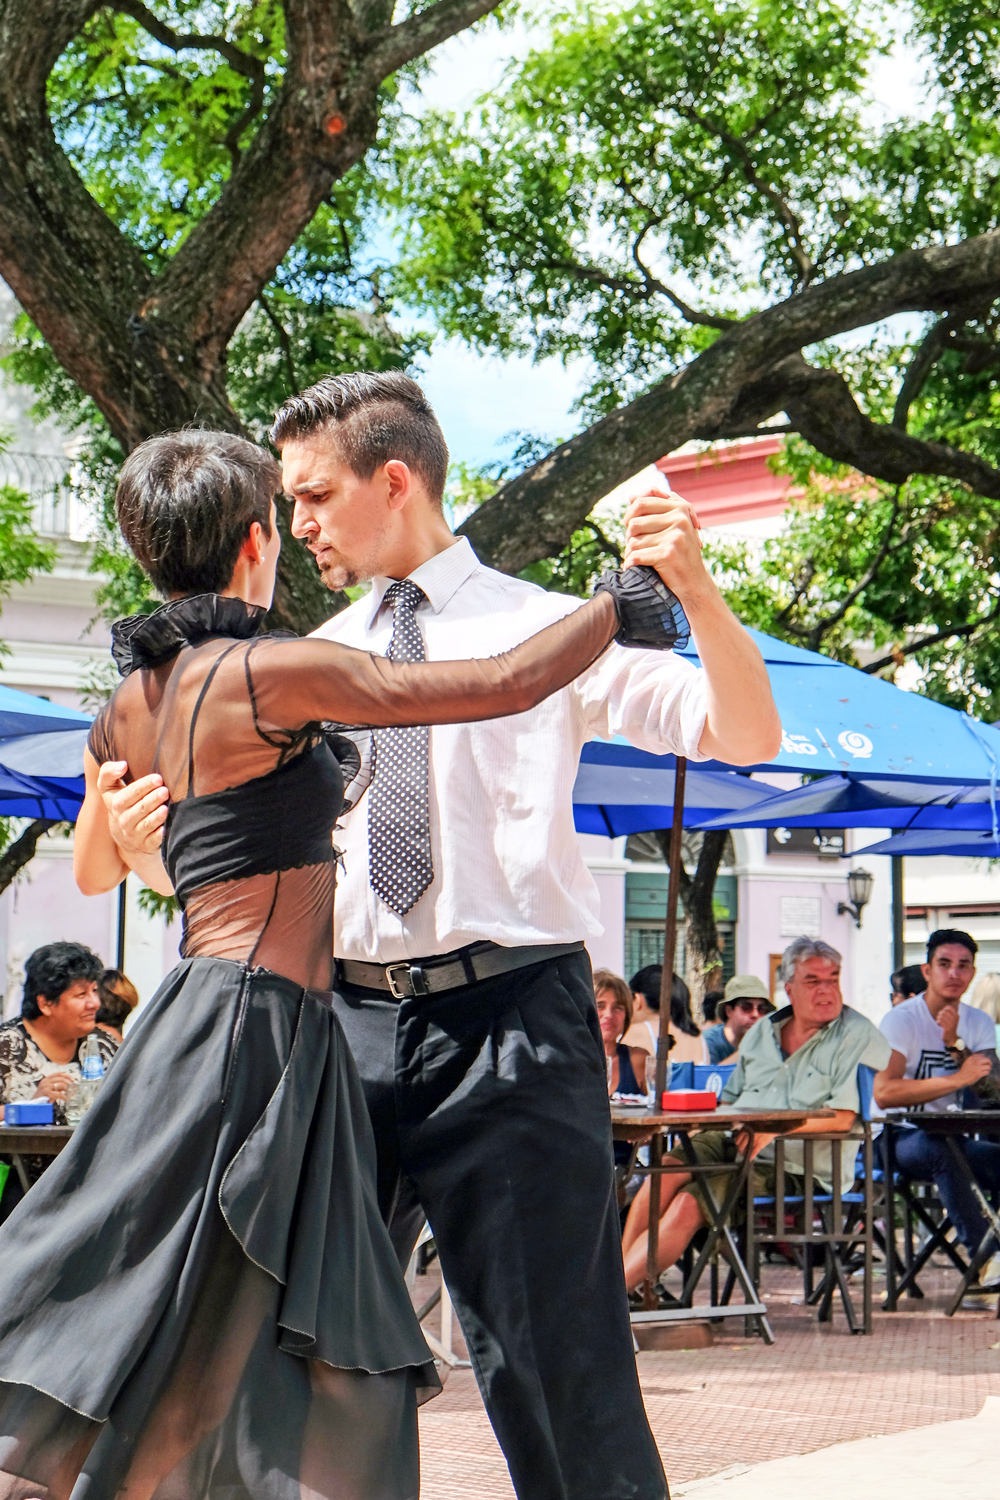 dancing-the-tango-in-san-telmo-buenos-aires-argentina.jpg